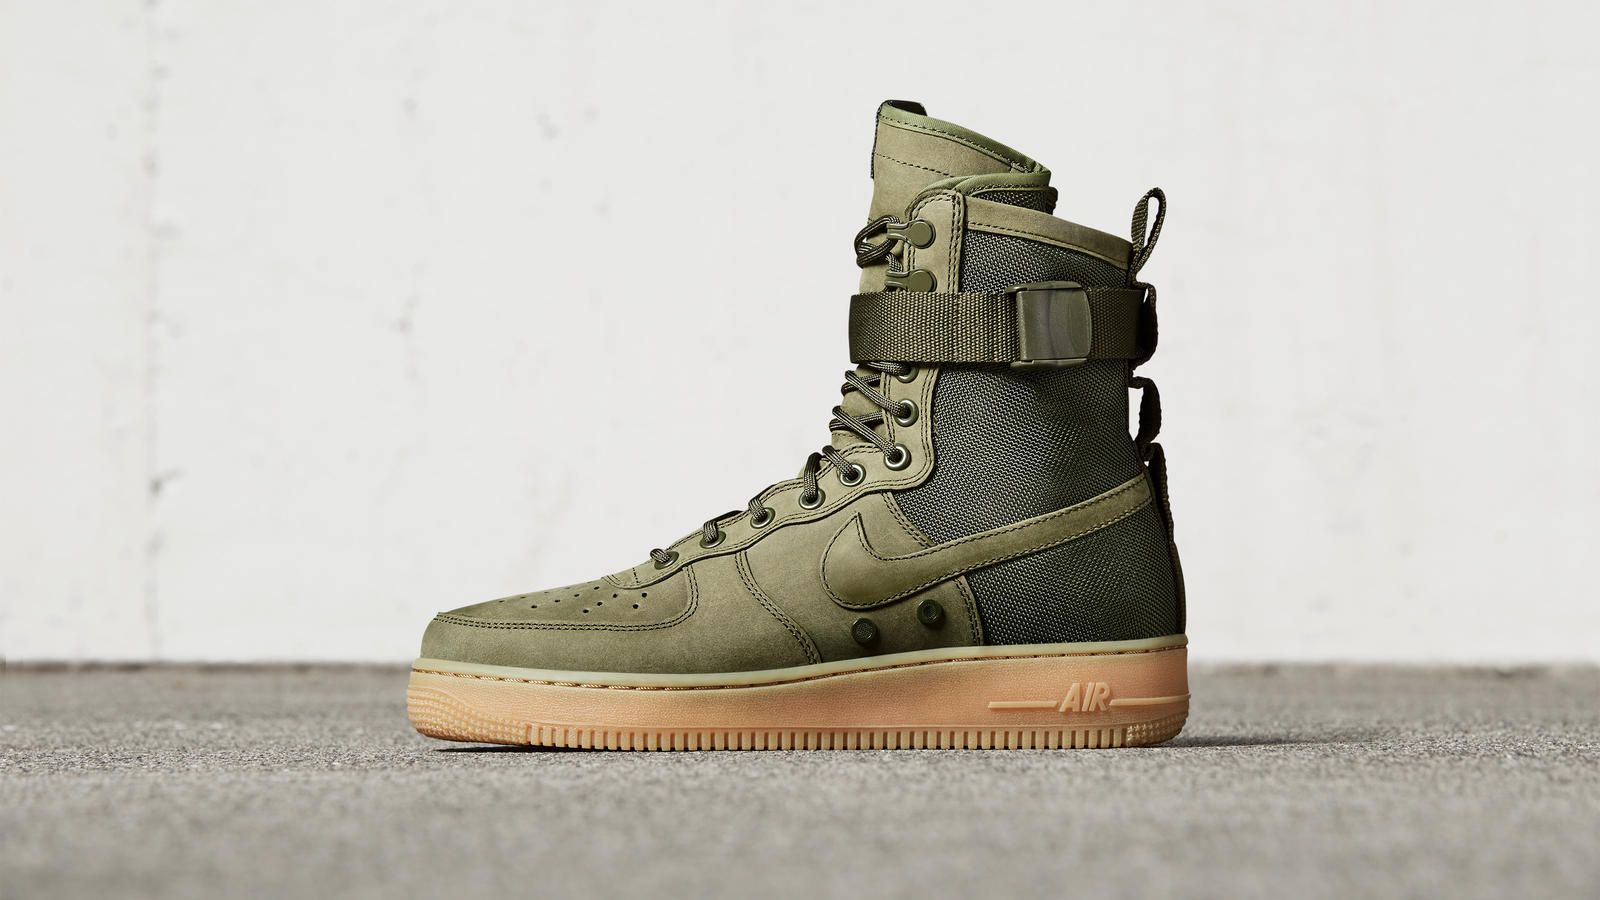 Special Forces Air Force 1 Boots High Rattan Womens Men's Casual Shoes